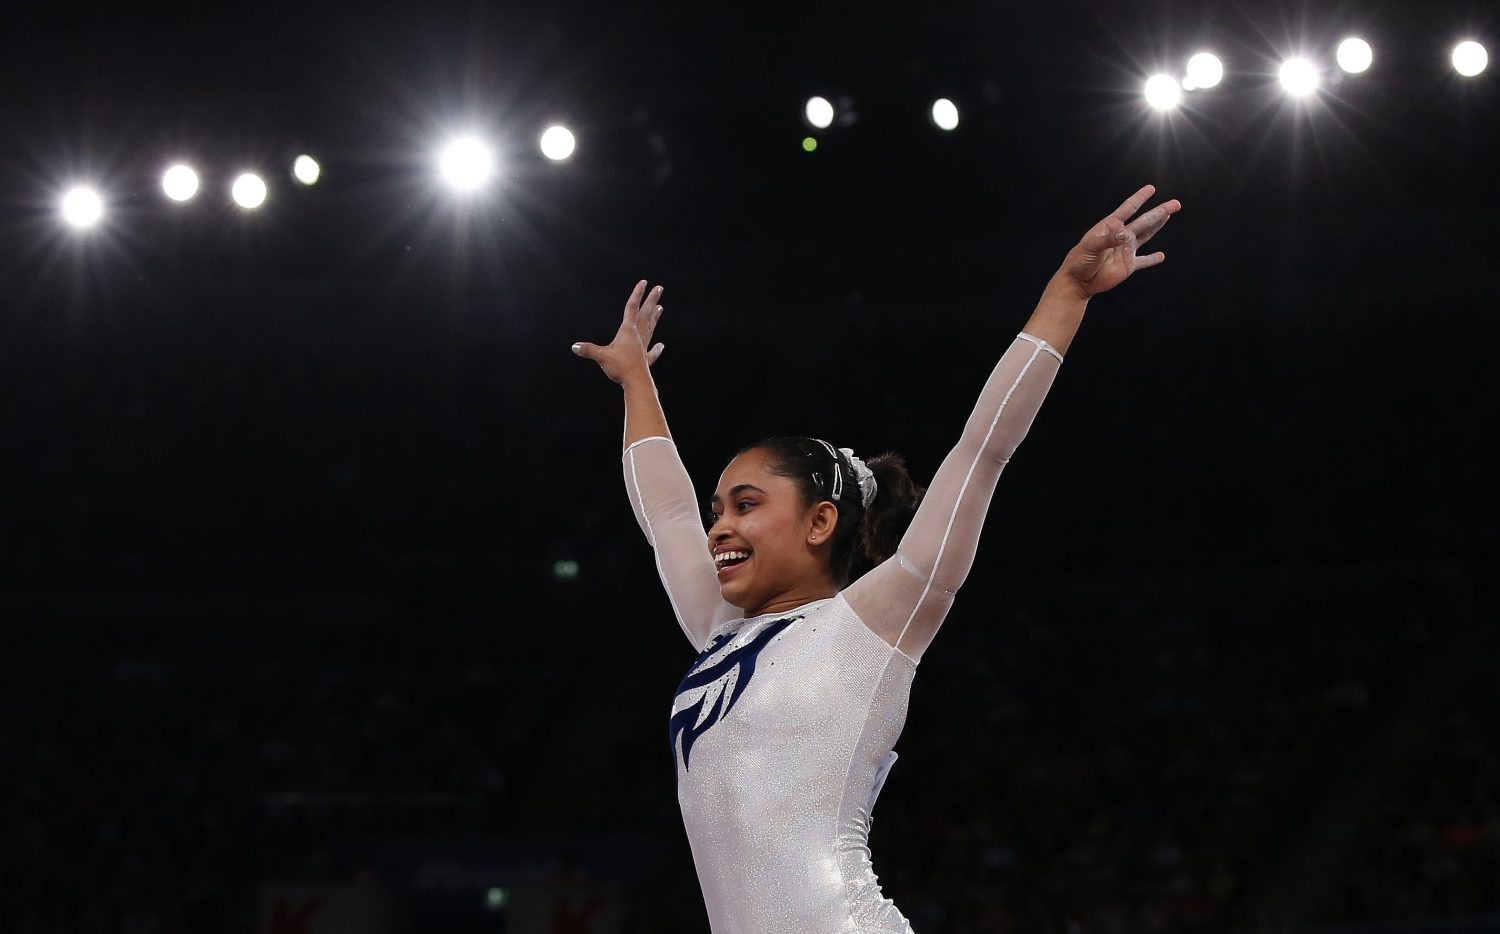 India's Dipa Karmakar reacts after a successful vault during the women's gymnastics vault apparatus final at the 2014 Commonwealth Games in Glasgow, Scotland, July 31, 2014. REUTERS/Phil Noble (BRITAIN - Tags: SPORT GYMNASTICS) - RTR40TZT